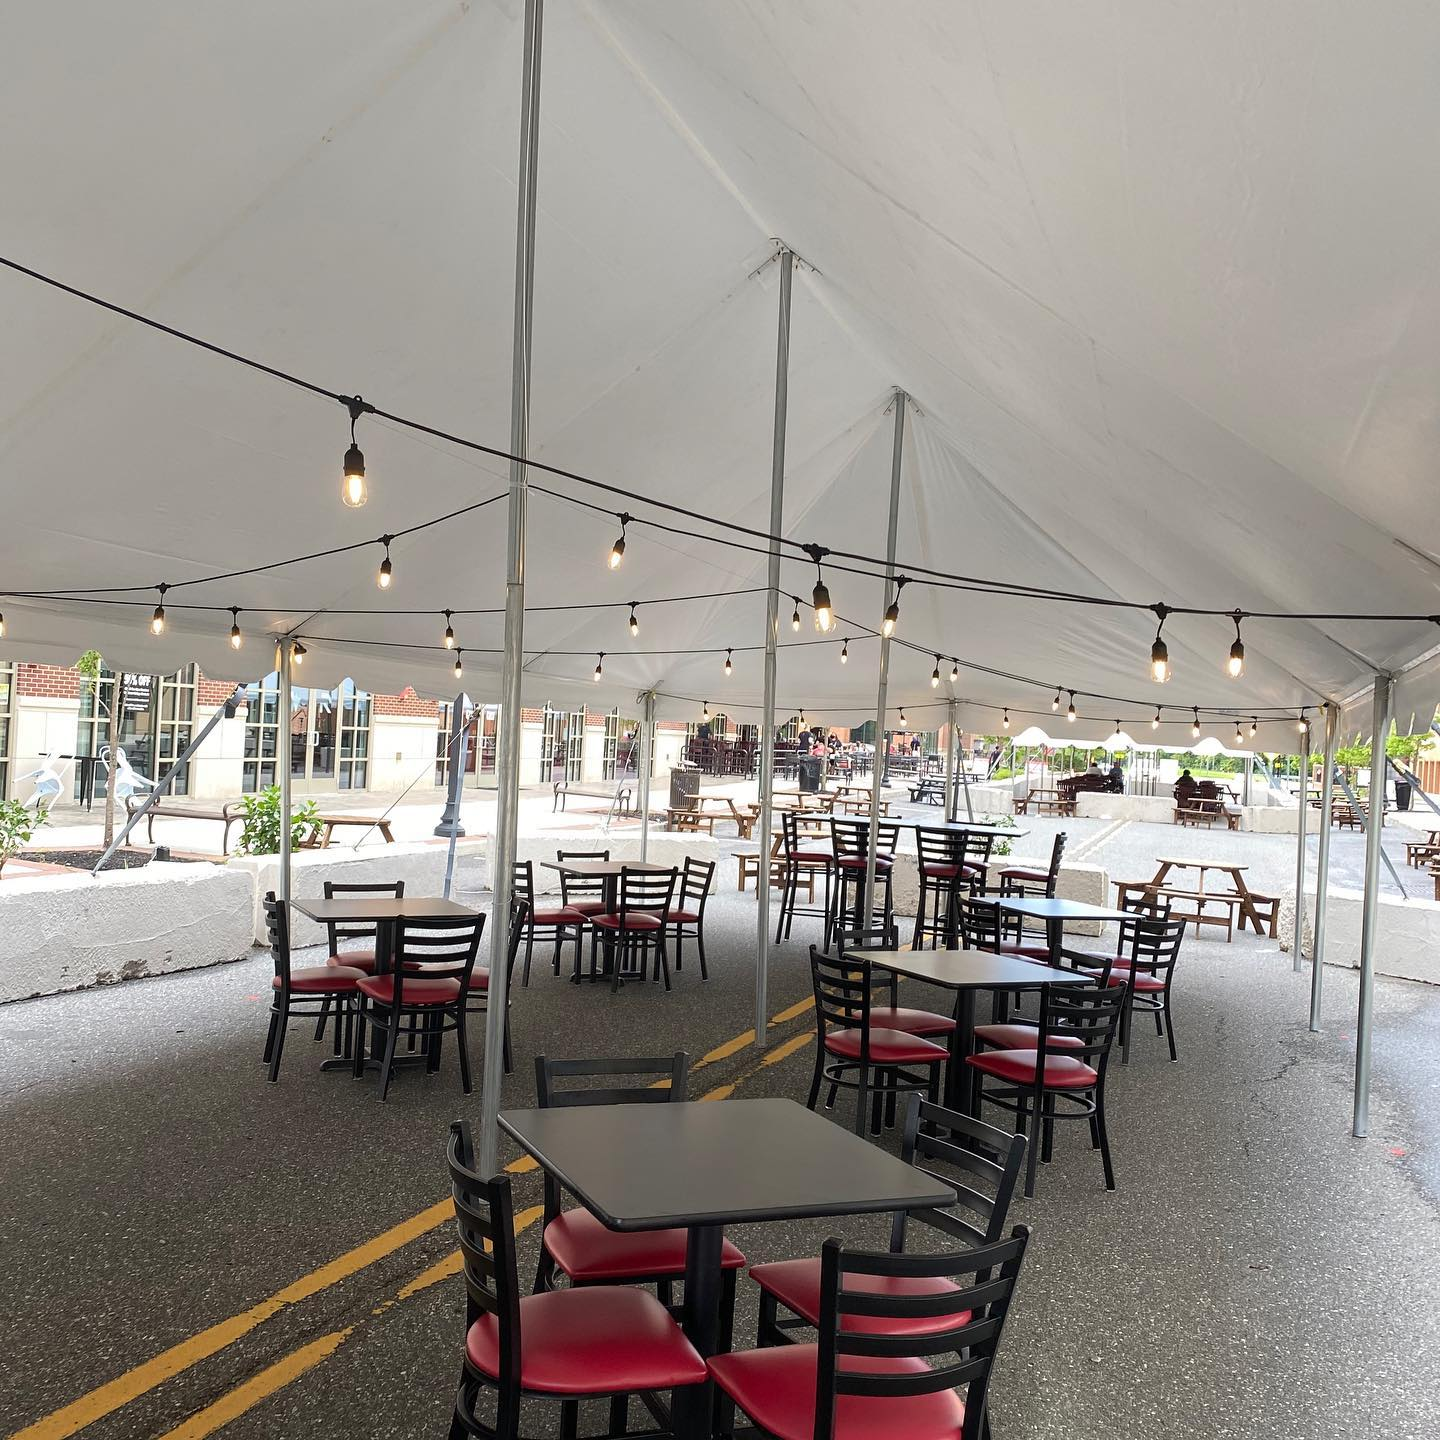 Glassboro's Rowan Blvd Has Large Dining Tents Filling the Streets and is Closed to Traffic.  Friday Aug 21 is Summer Fest!